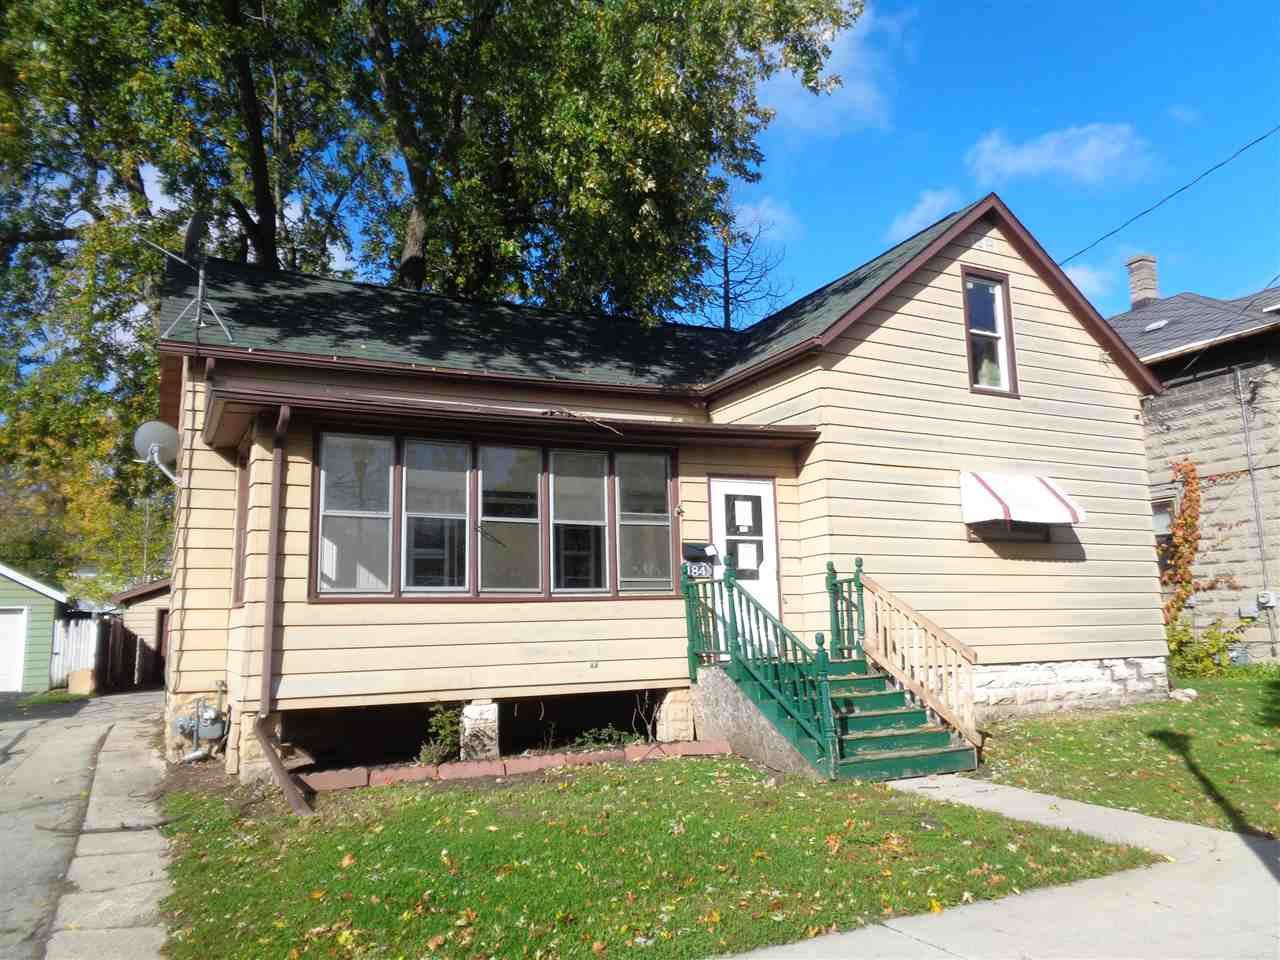 184 N Lincoln Ave, Fond du Lac, WI 54935 - #: 1875462